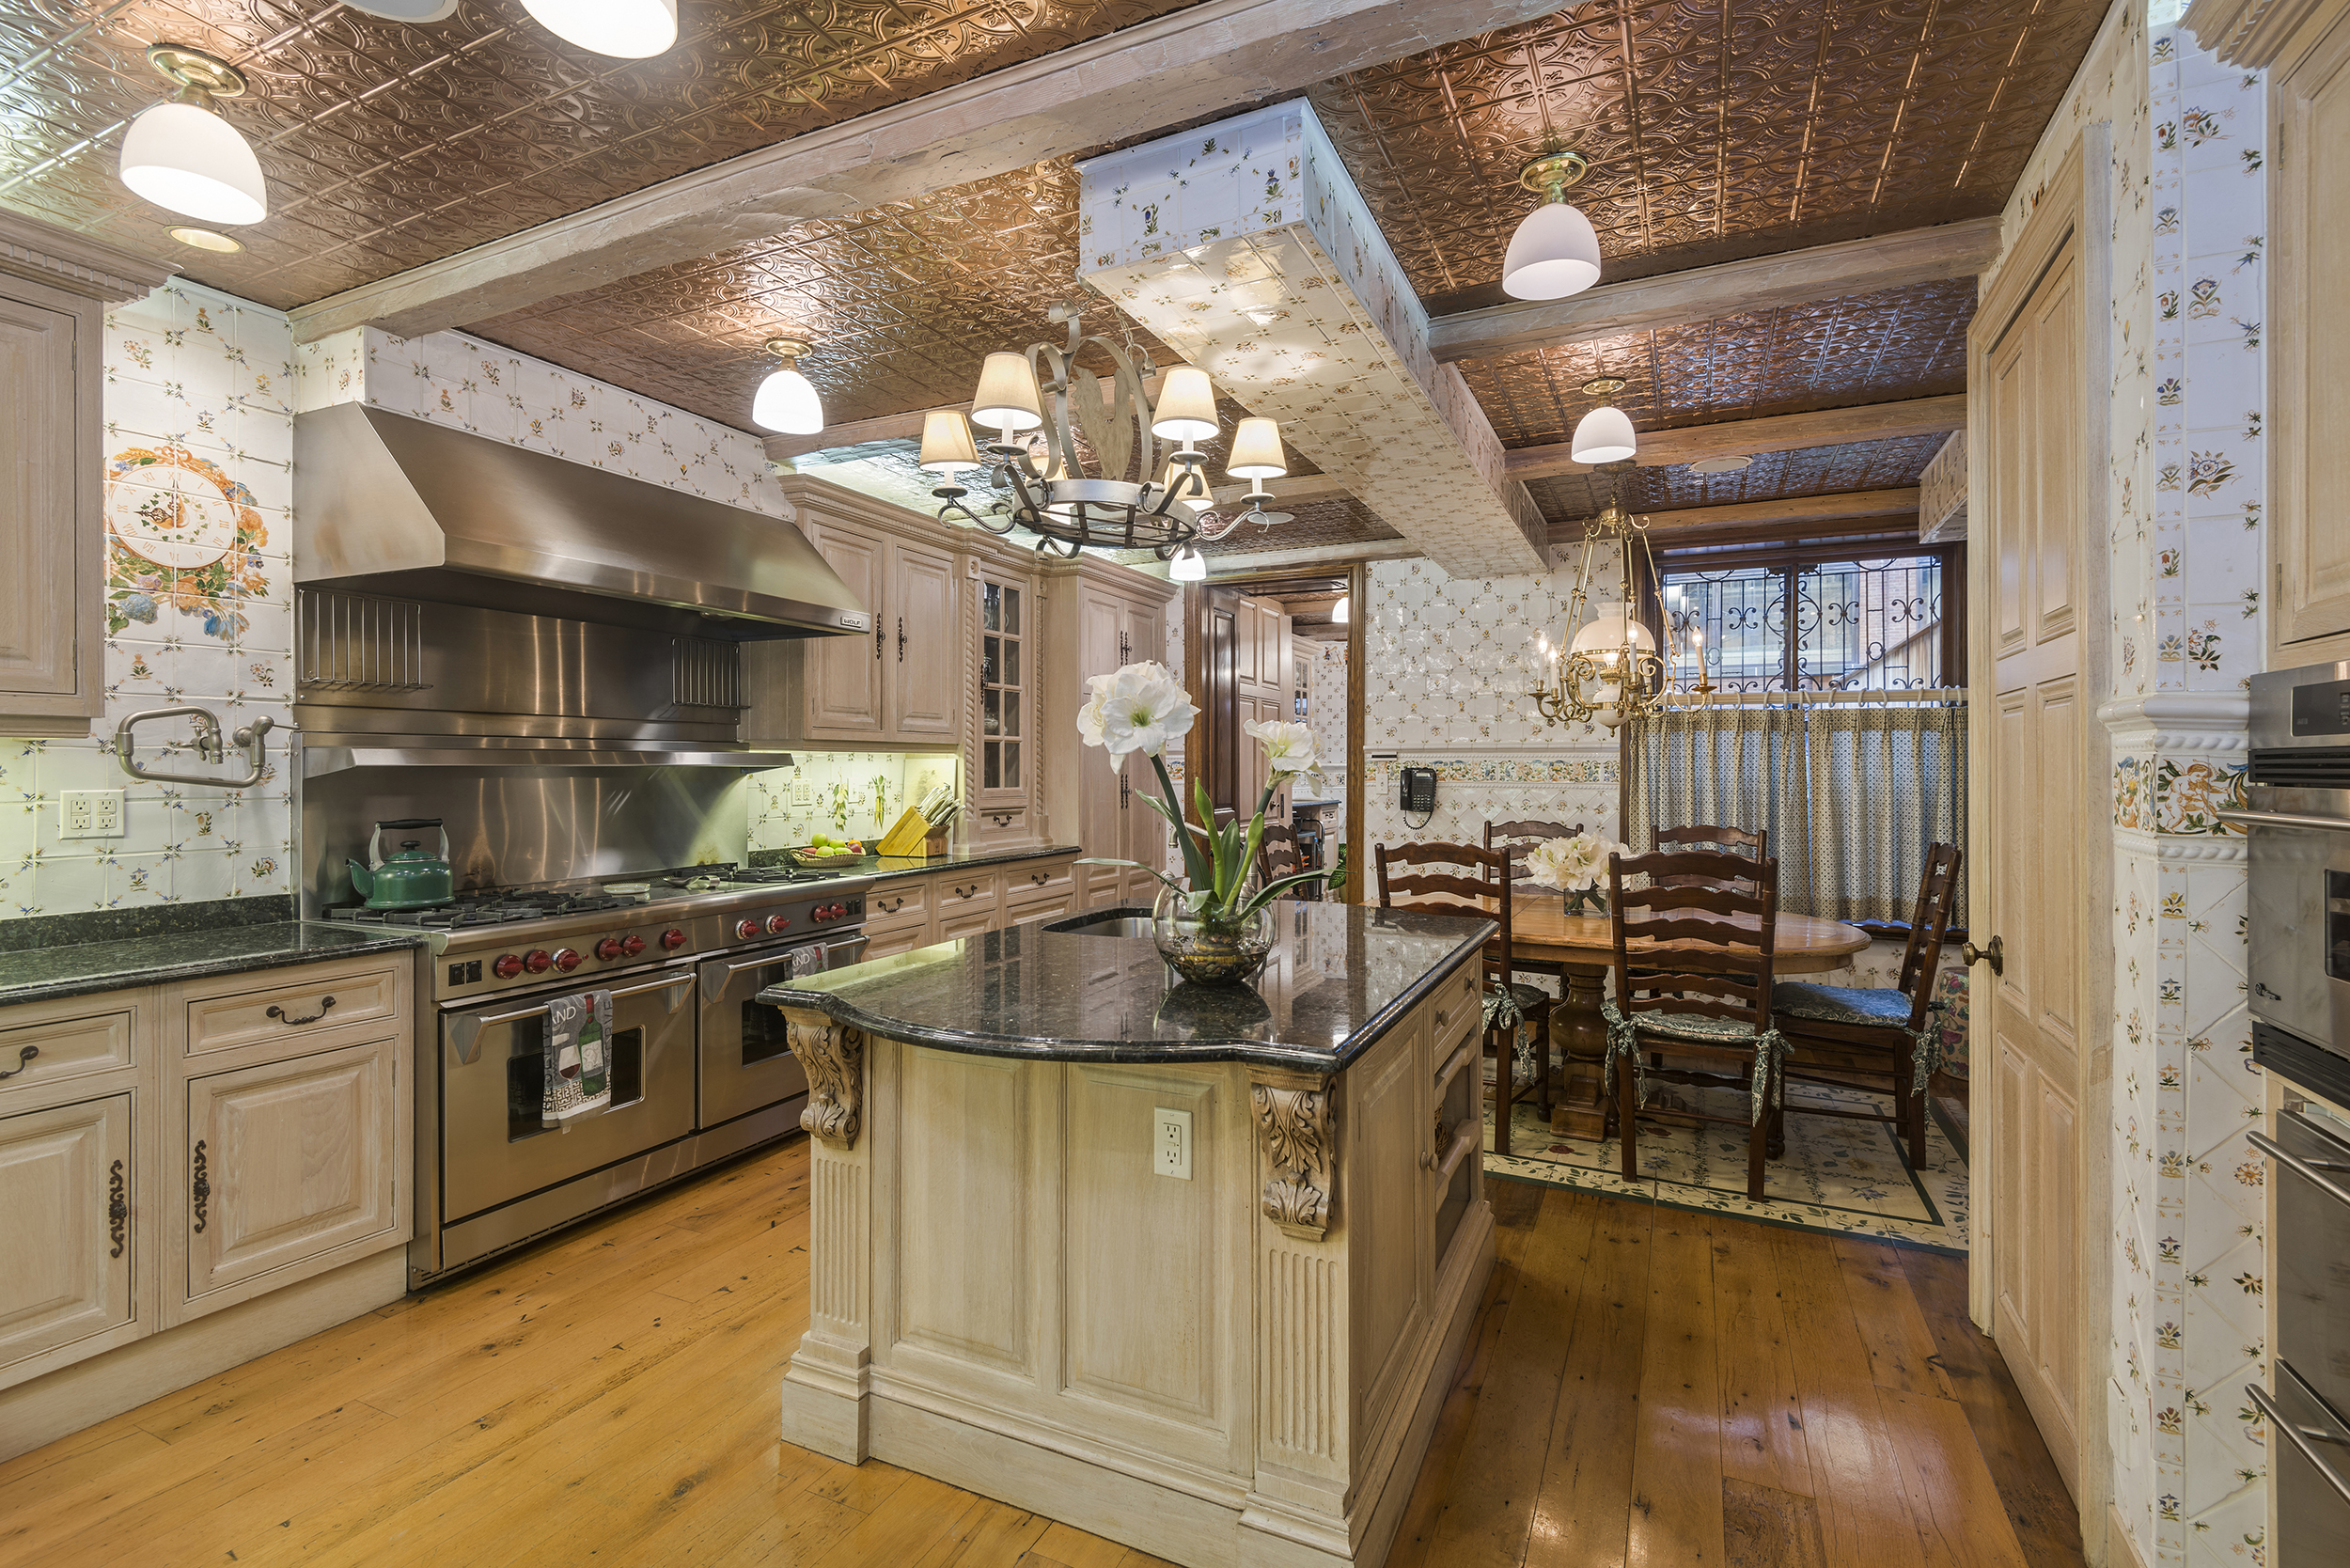 131 West 69th Street: Luxury Upper West Side townhouse kitchen